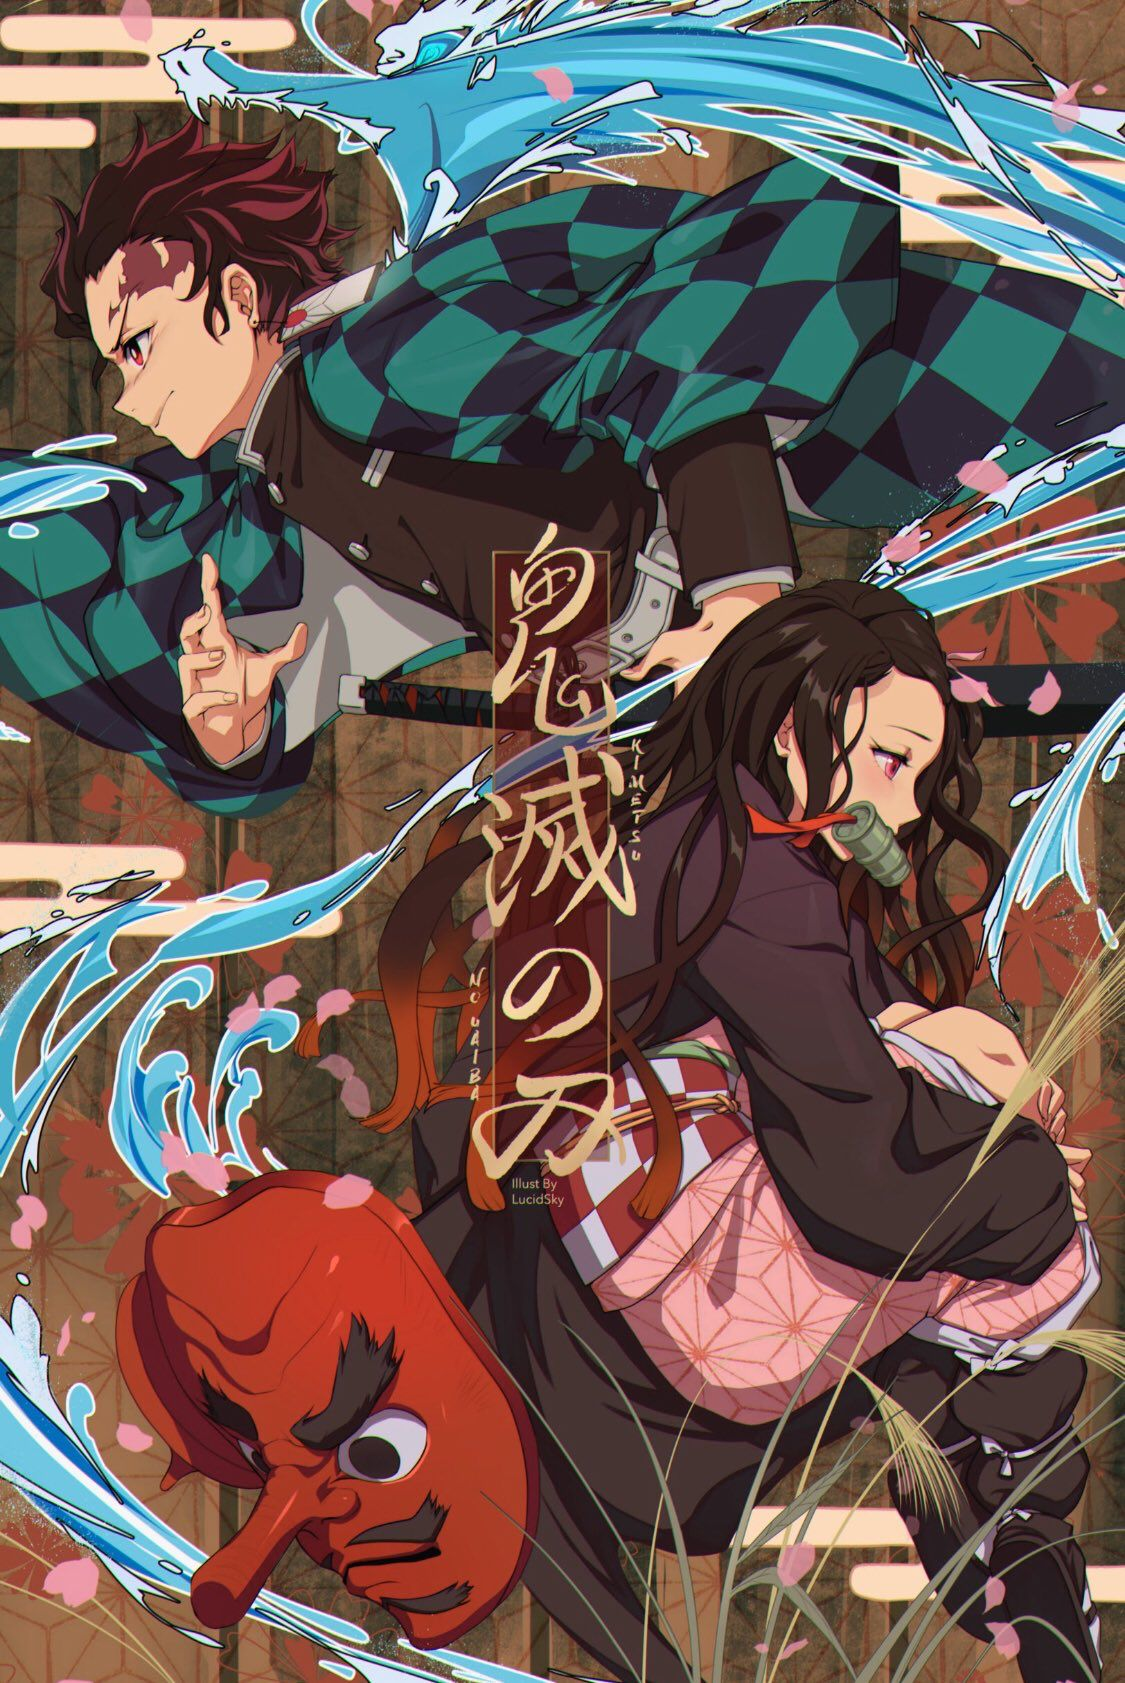 Demon Slayer Kimetsu No Yaiba Anime Demon Anime Wallpaper Otaku Anime